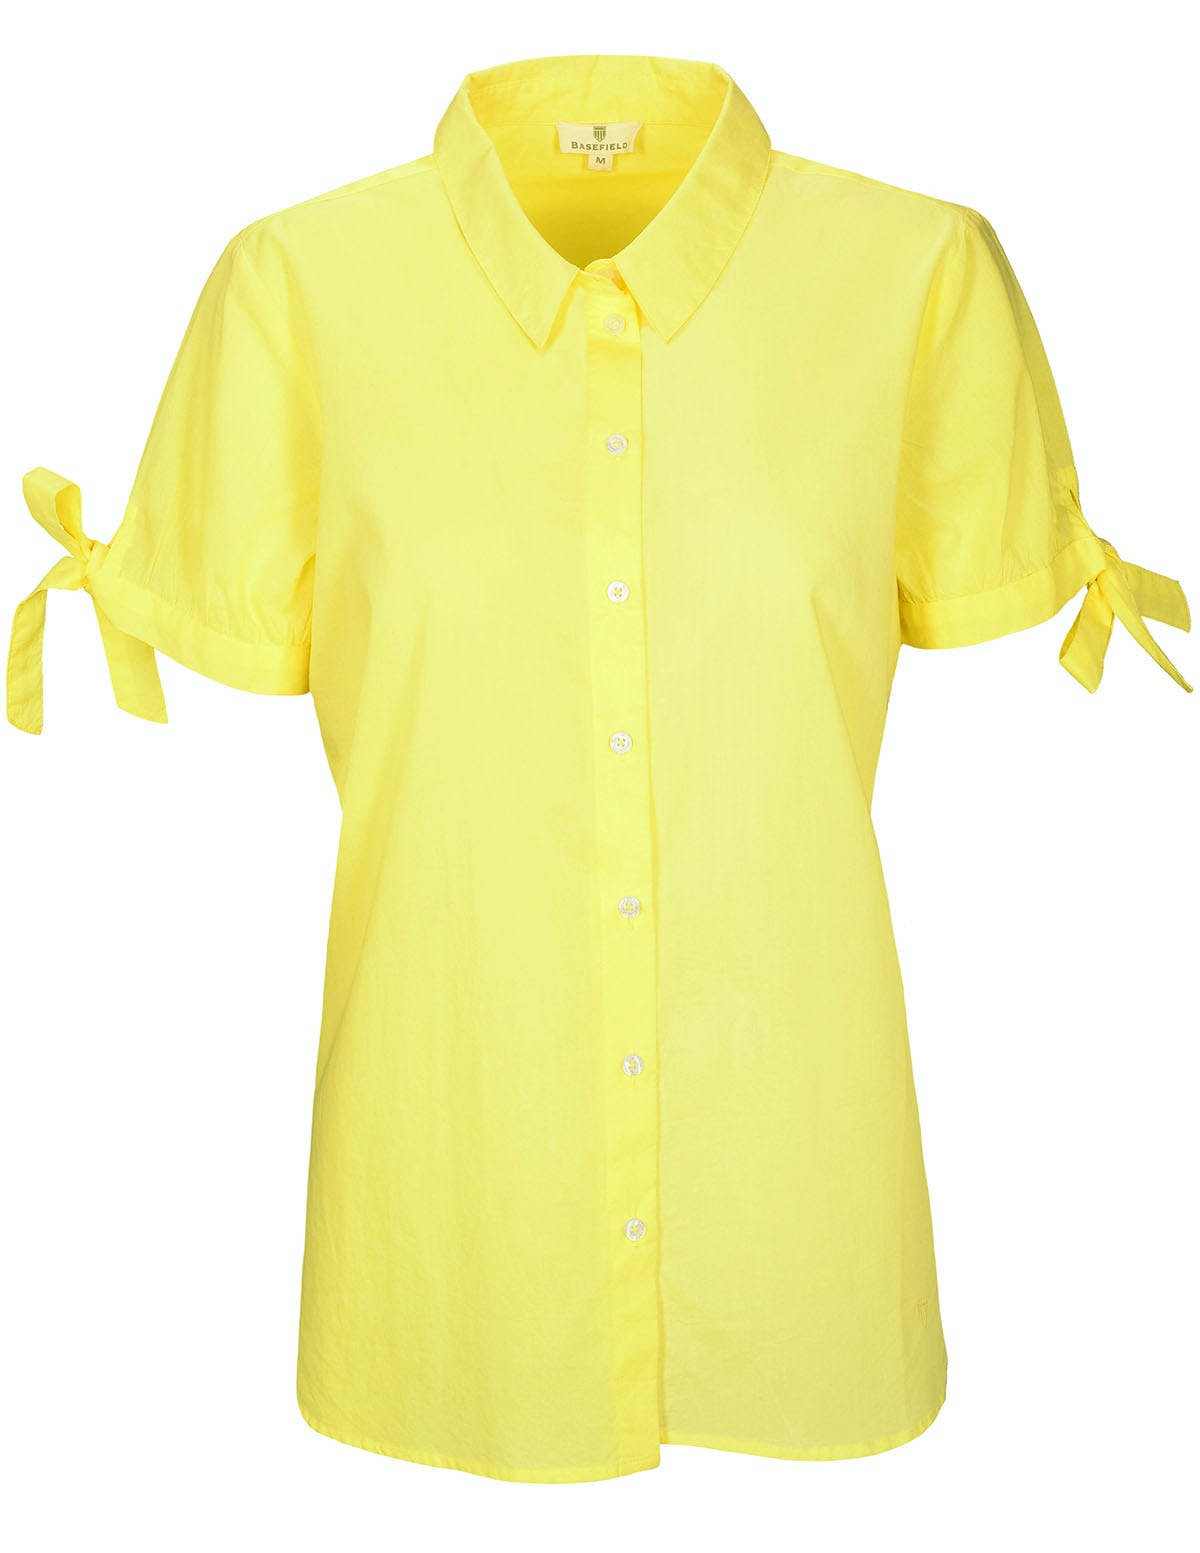 229005568-sunny__bluse__all